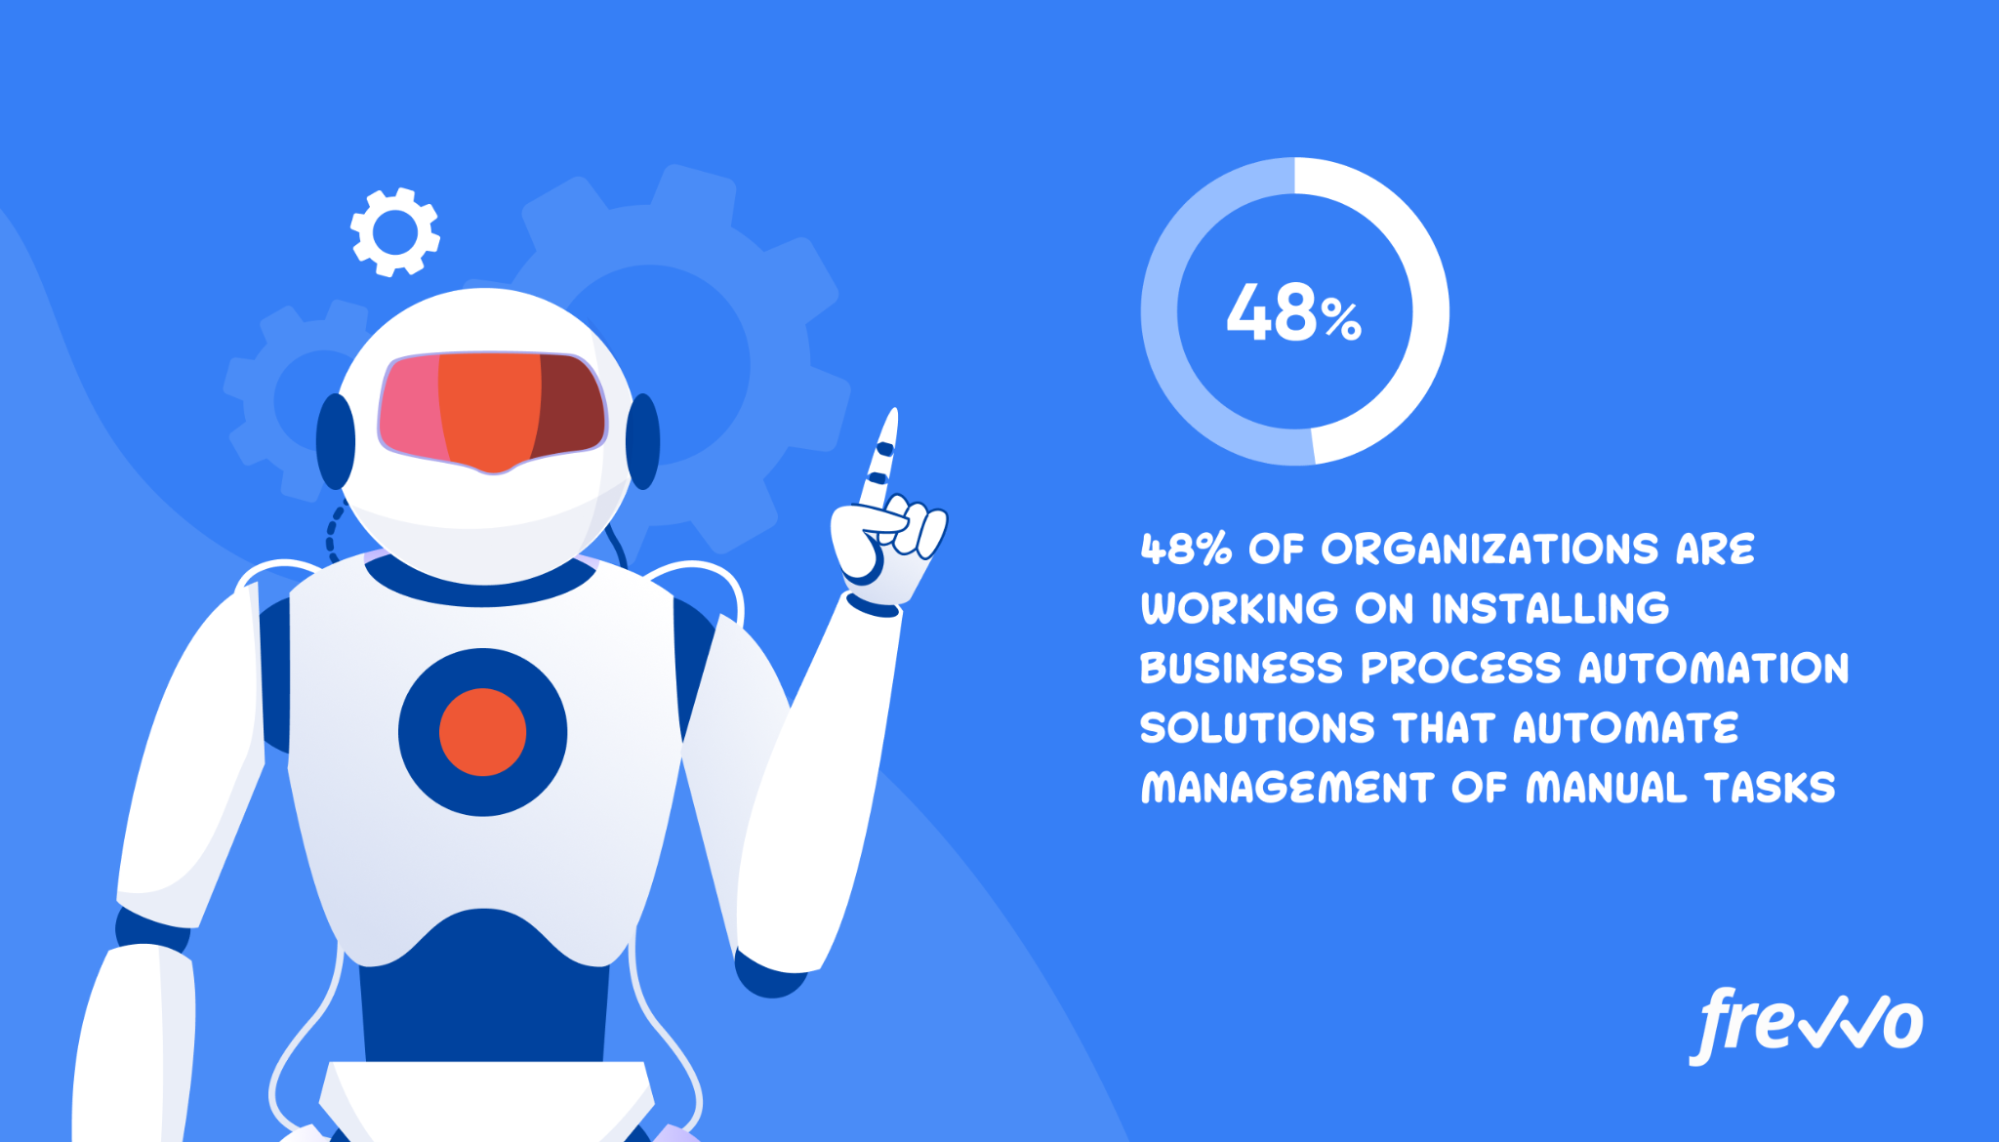 48% of organizations are working on installing business process automation solutions that specifically automate management of manual tasks